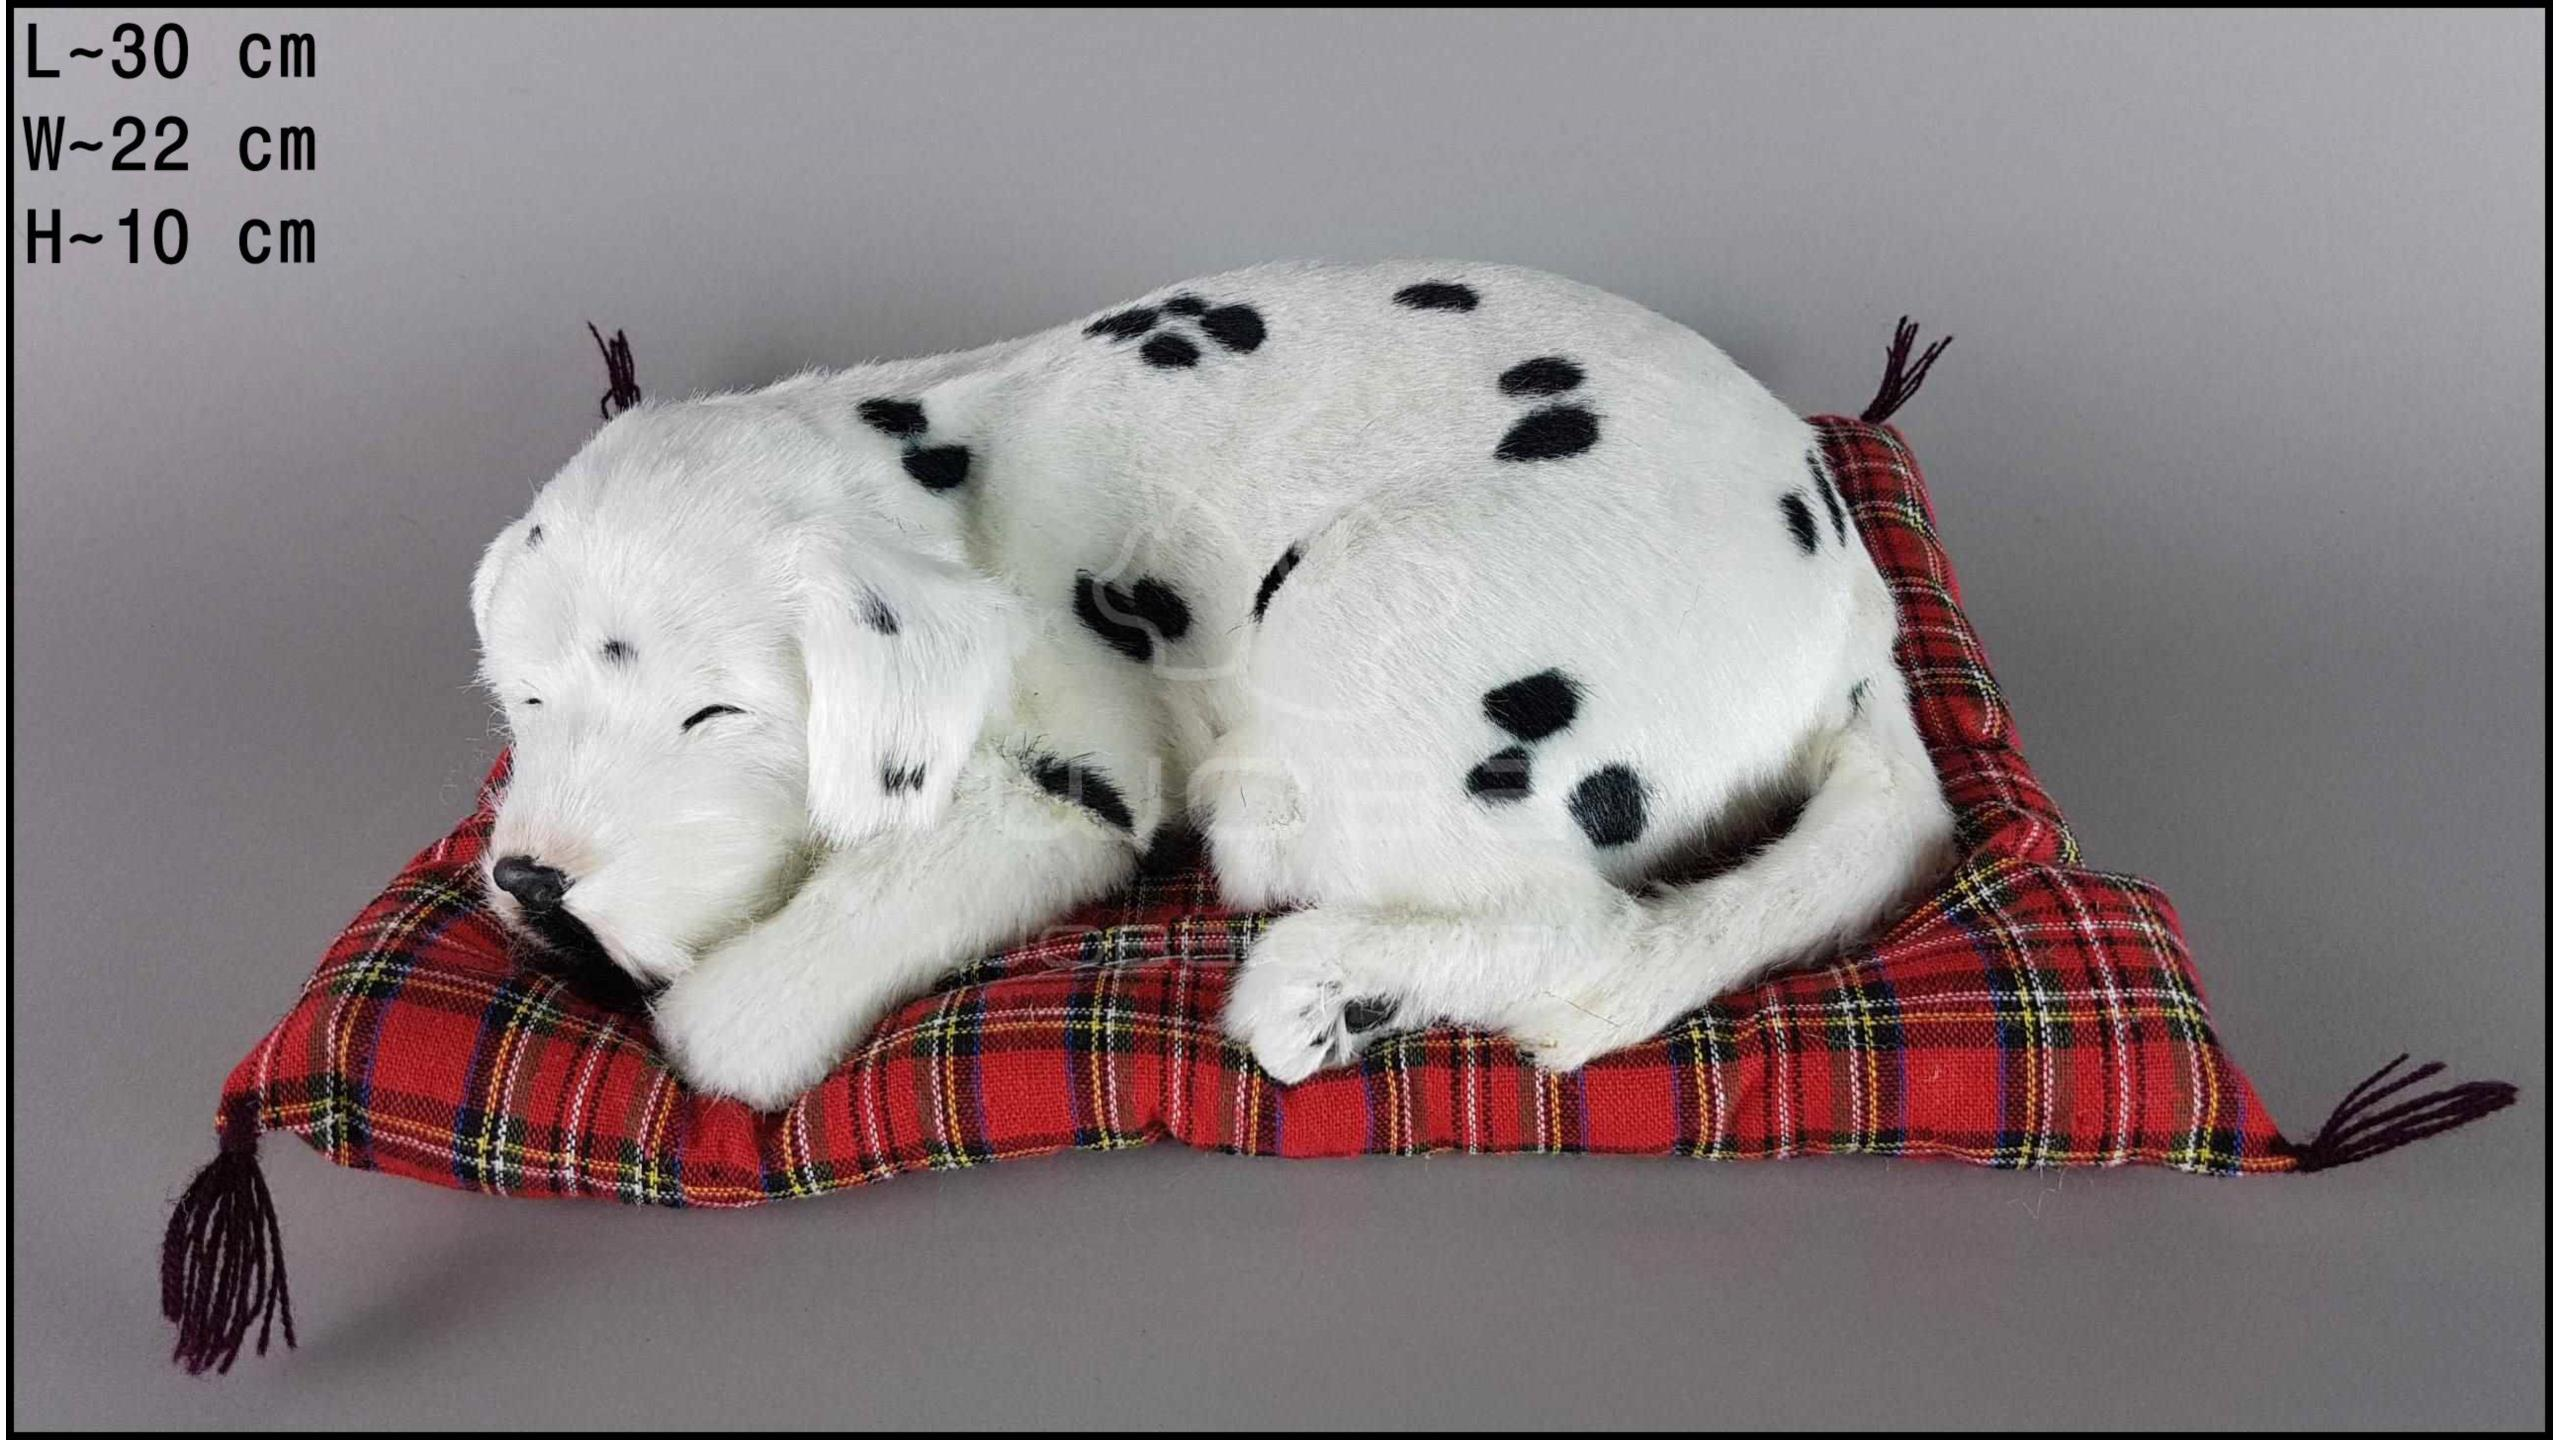 Dog Dalmatian on a pillow - Size L